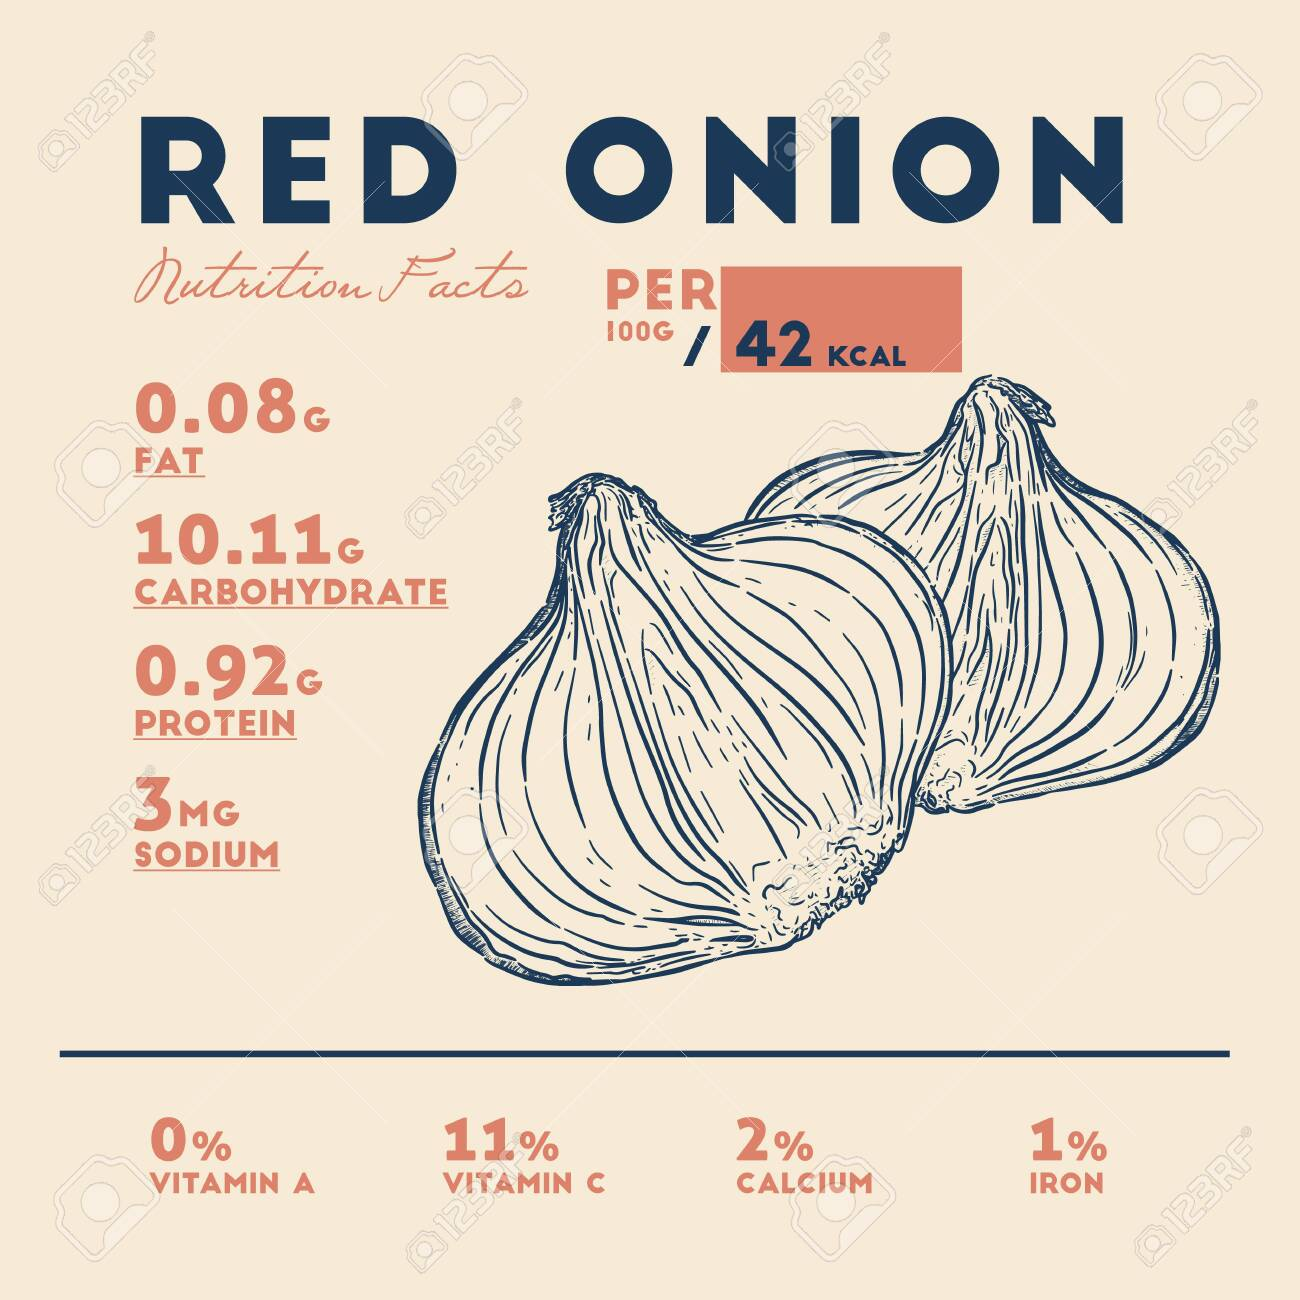 Nutrition Facts Of Red Onion Hand Draw Sketch Vector Royalty Free Cliparts Vectors And Stock Illustration Image 138700752